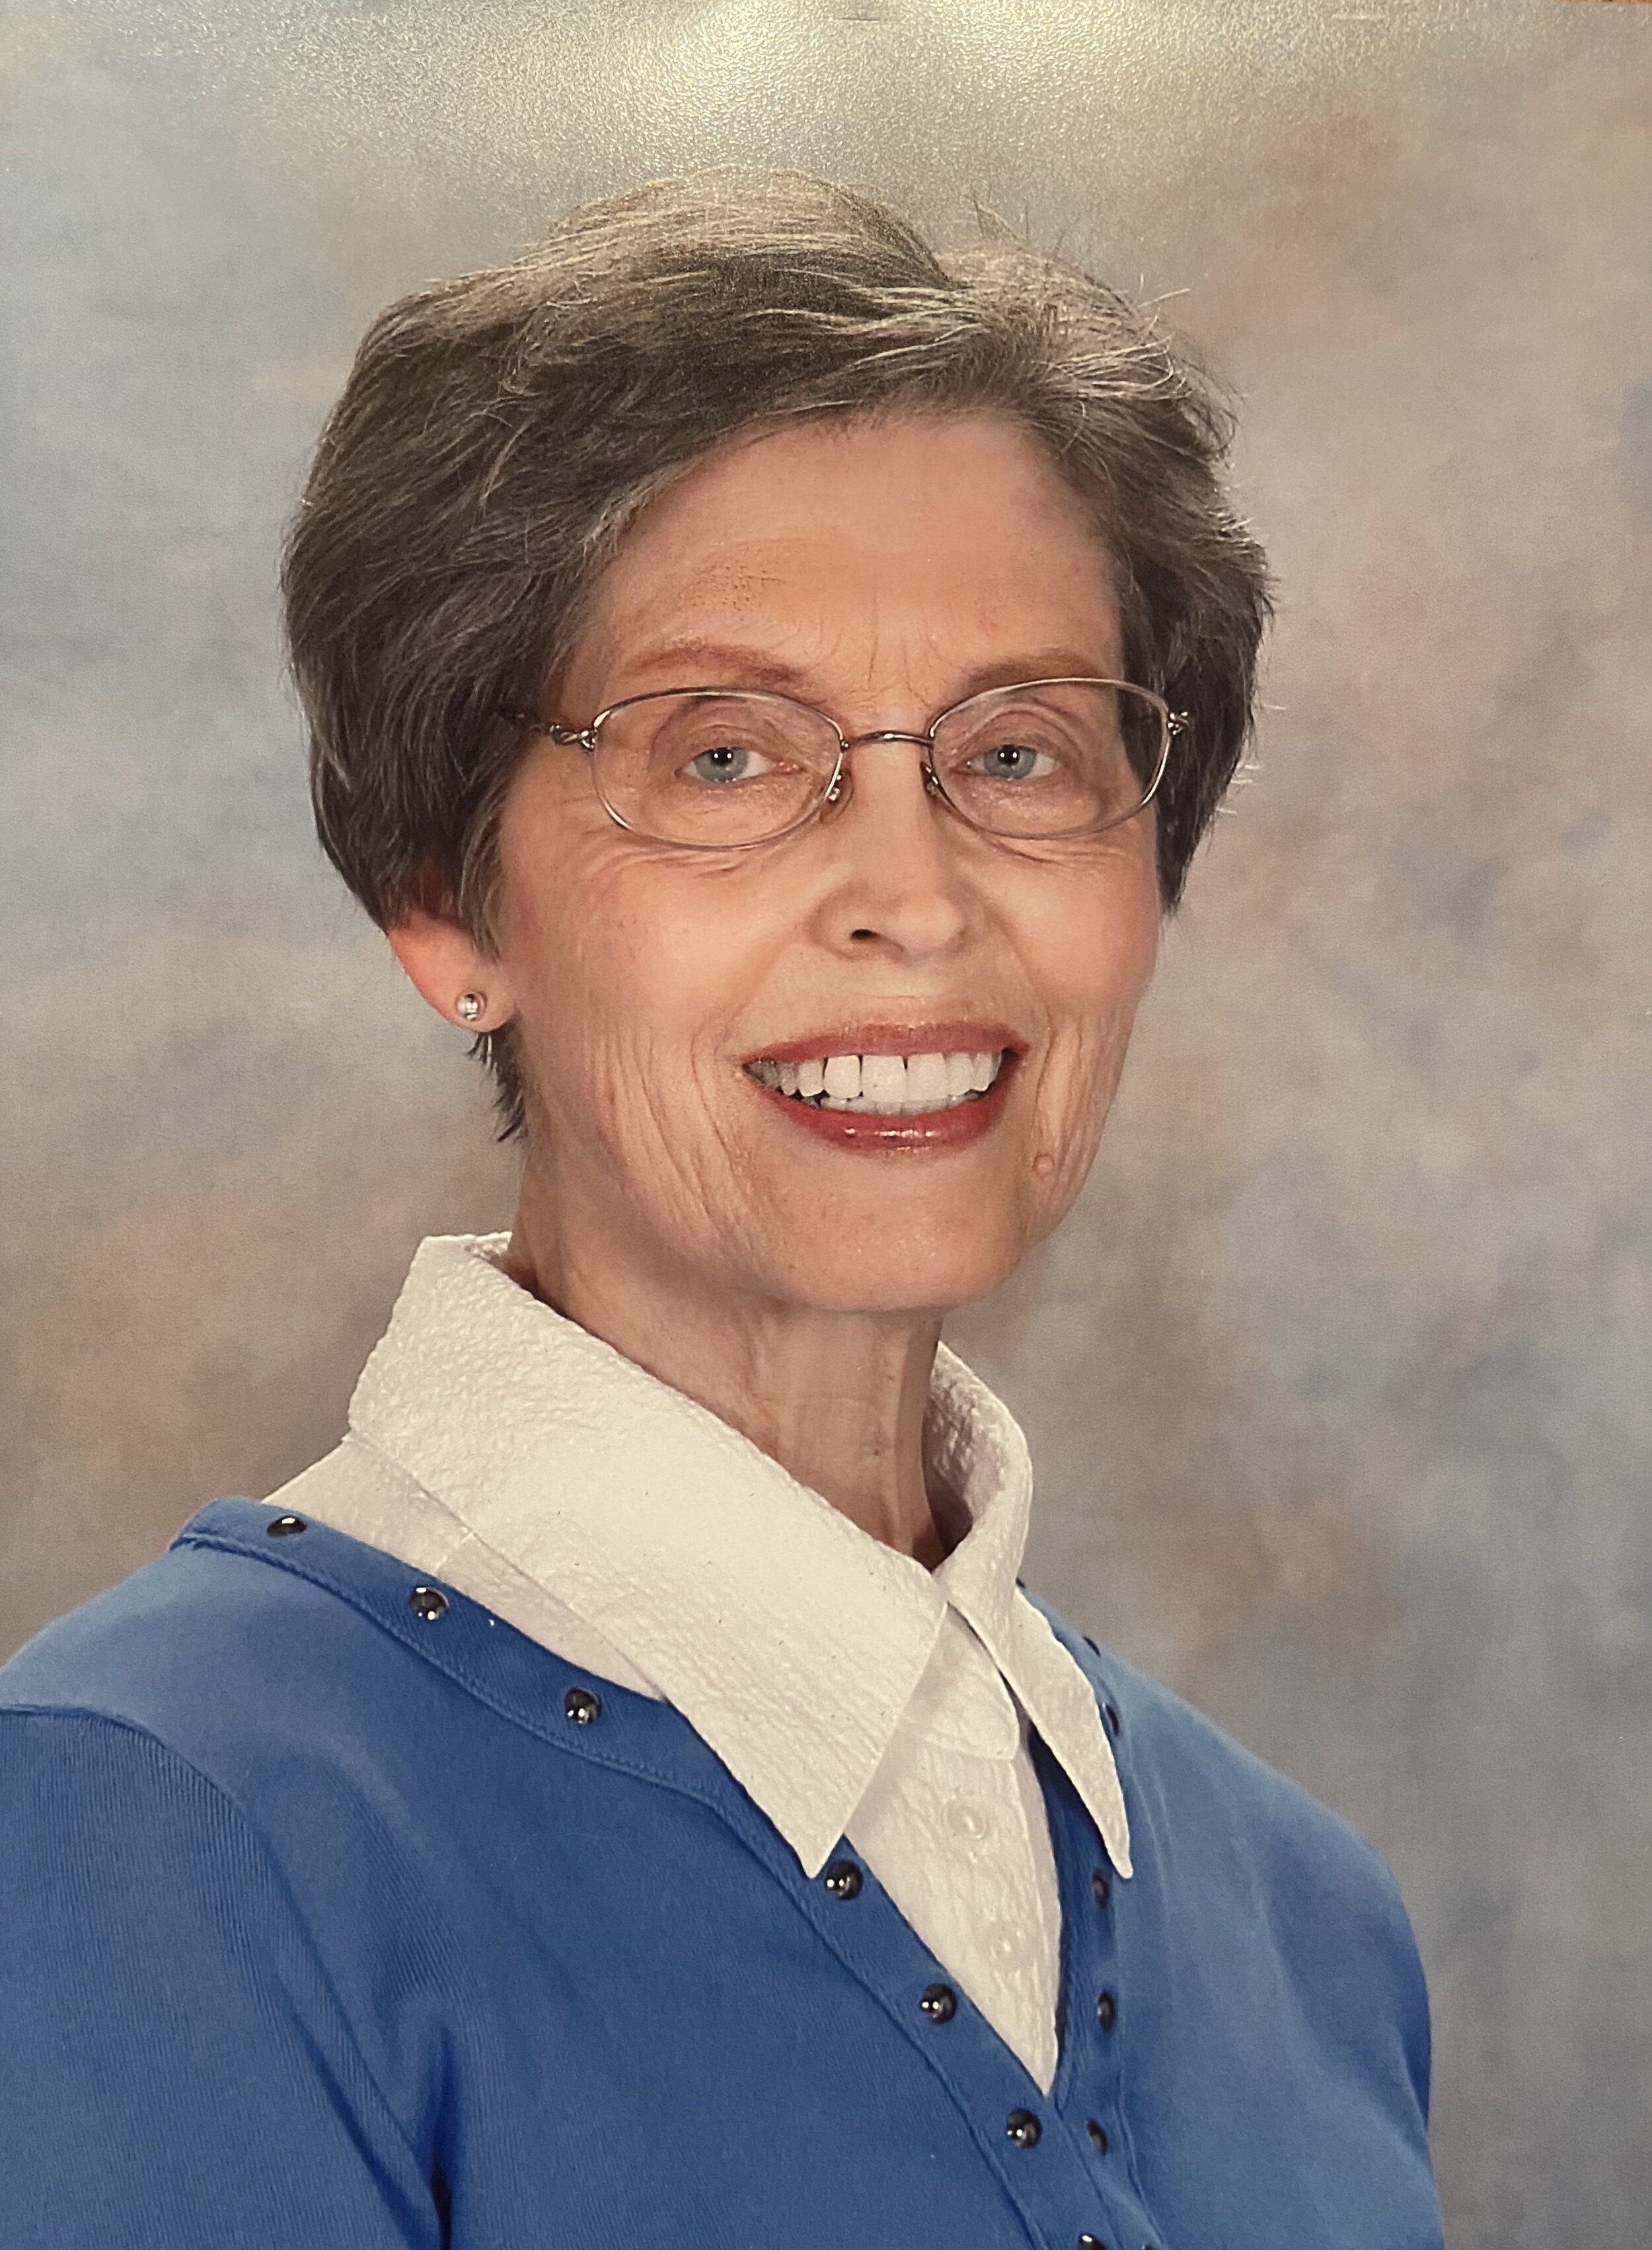 Celebration of Life for - Diane T. FinleyRSVP for Celebration of Life was held on August 15, 2020 at 2:30 PM Central Time